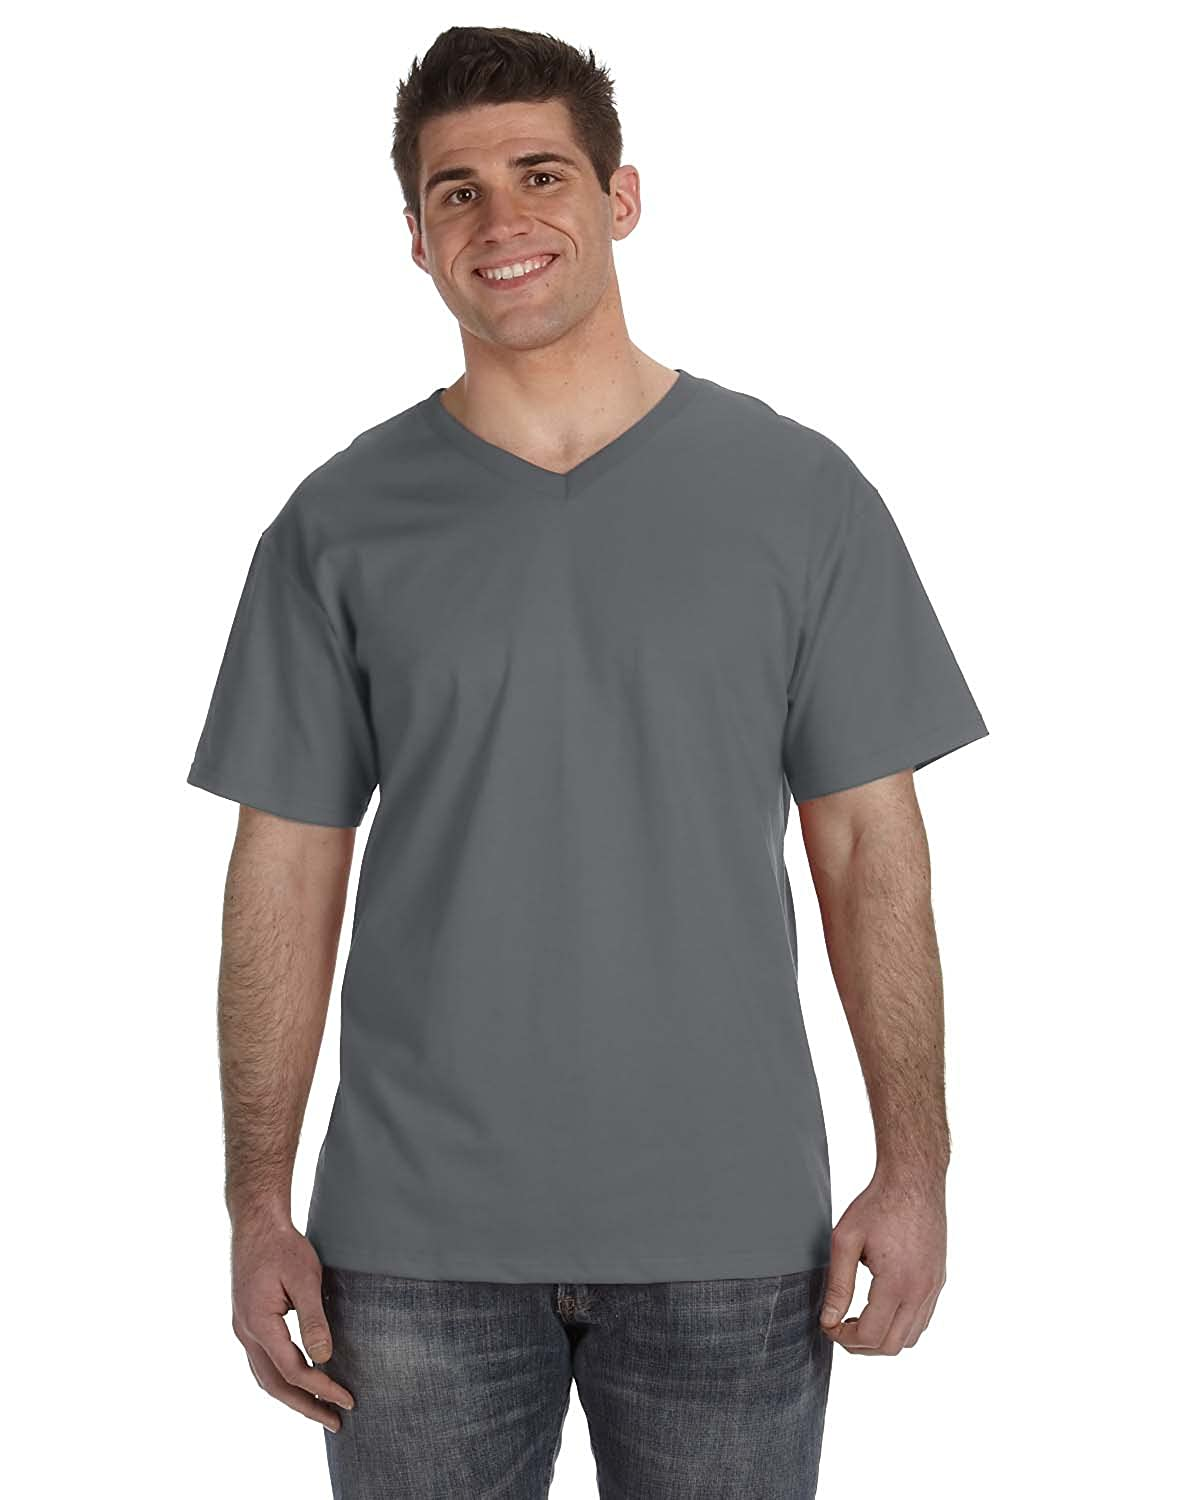 Fruit of the Loom Men's Heavy Cotton HD V-Neck T-Shirt, CHARCOAL GREY